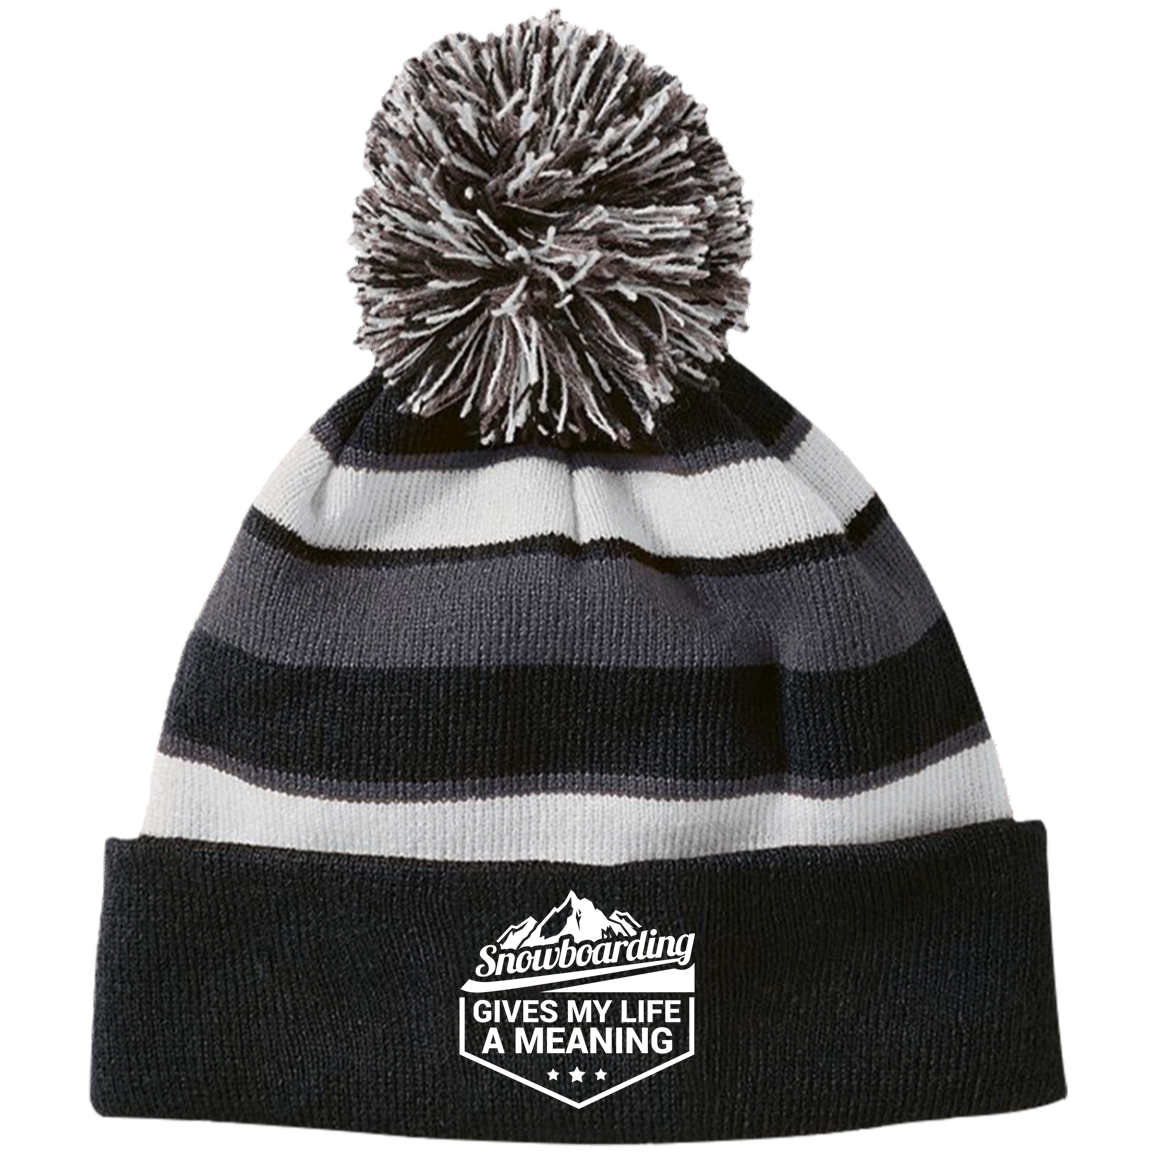 Snowboarding Gives My Life a Meaning Striped Beanie - Powderaddicts